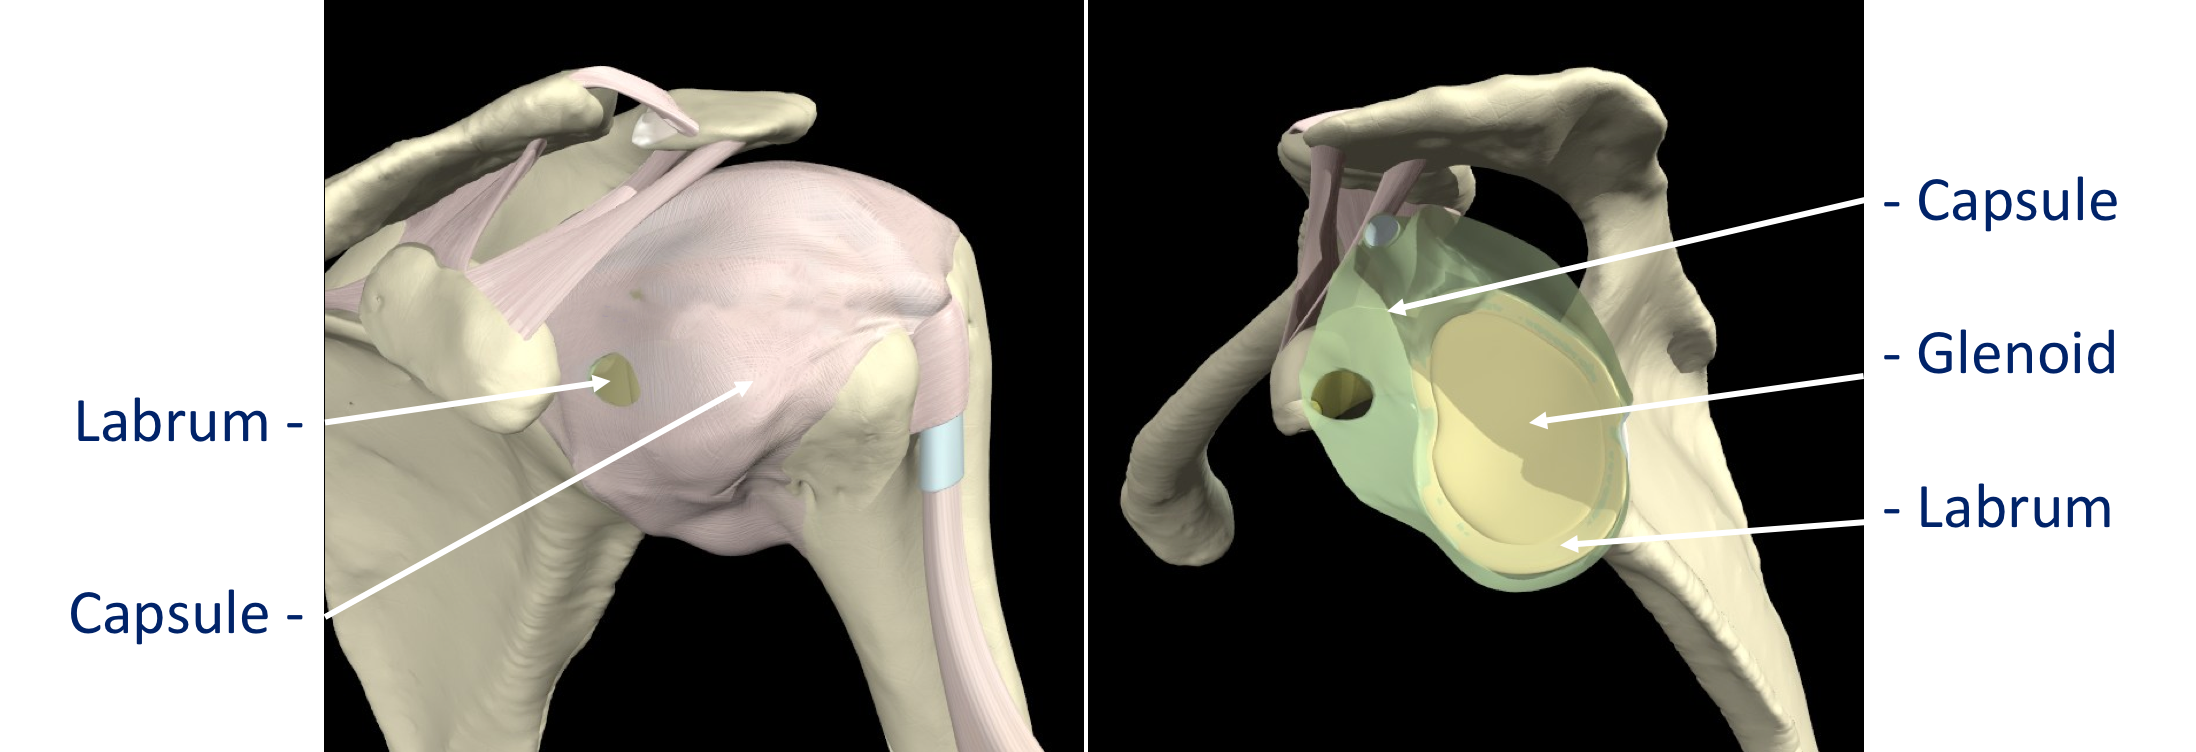 Fig 1. Capsule & Labrum